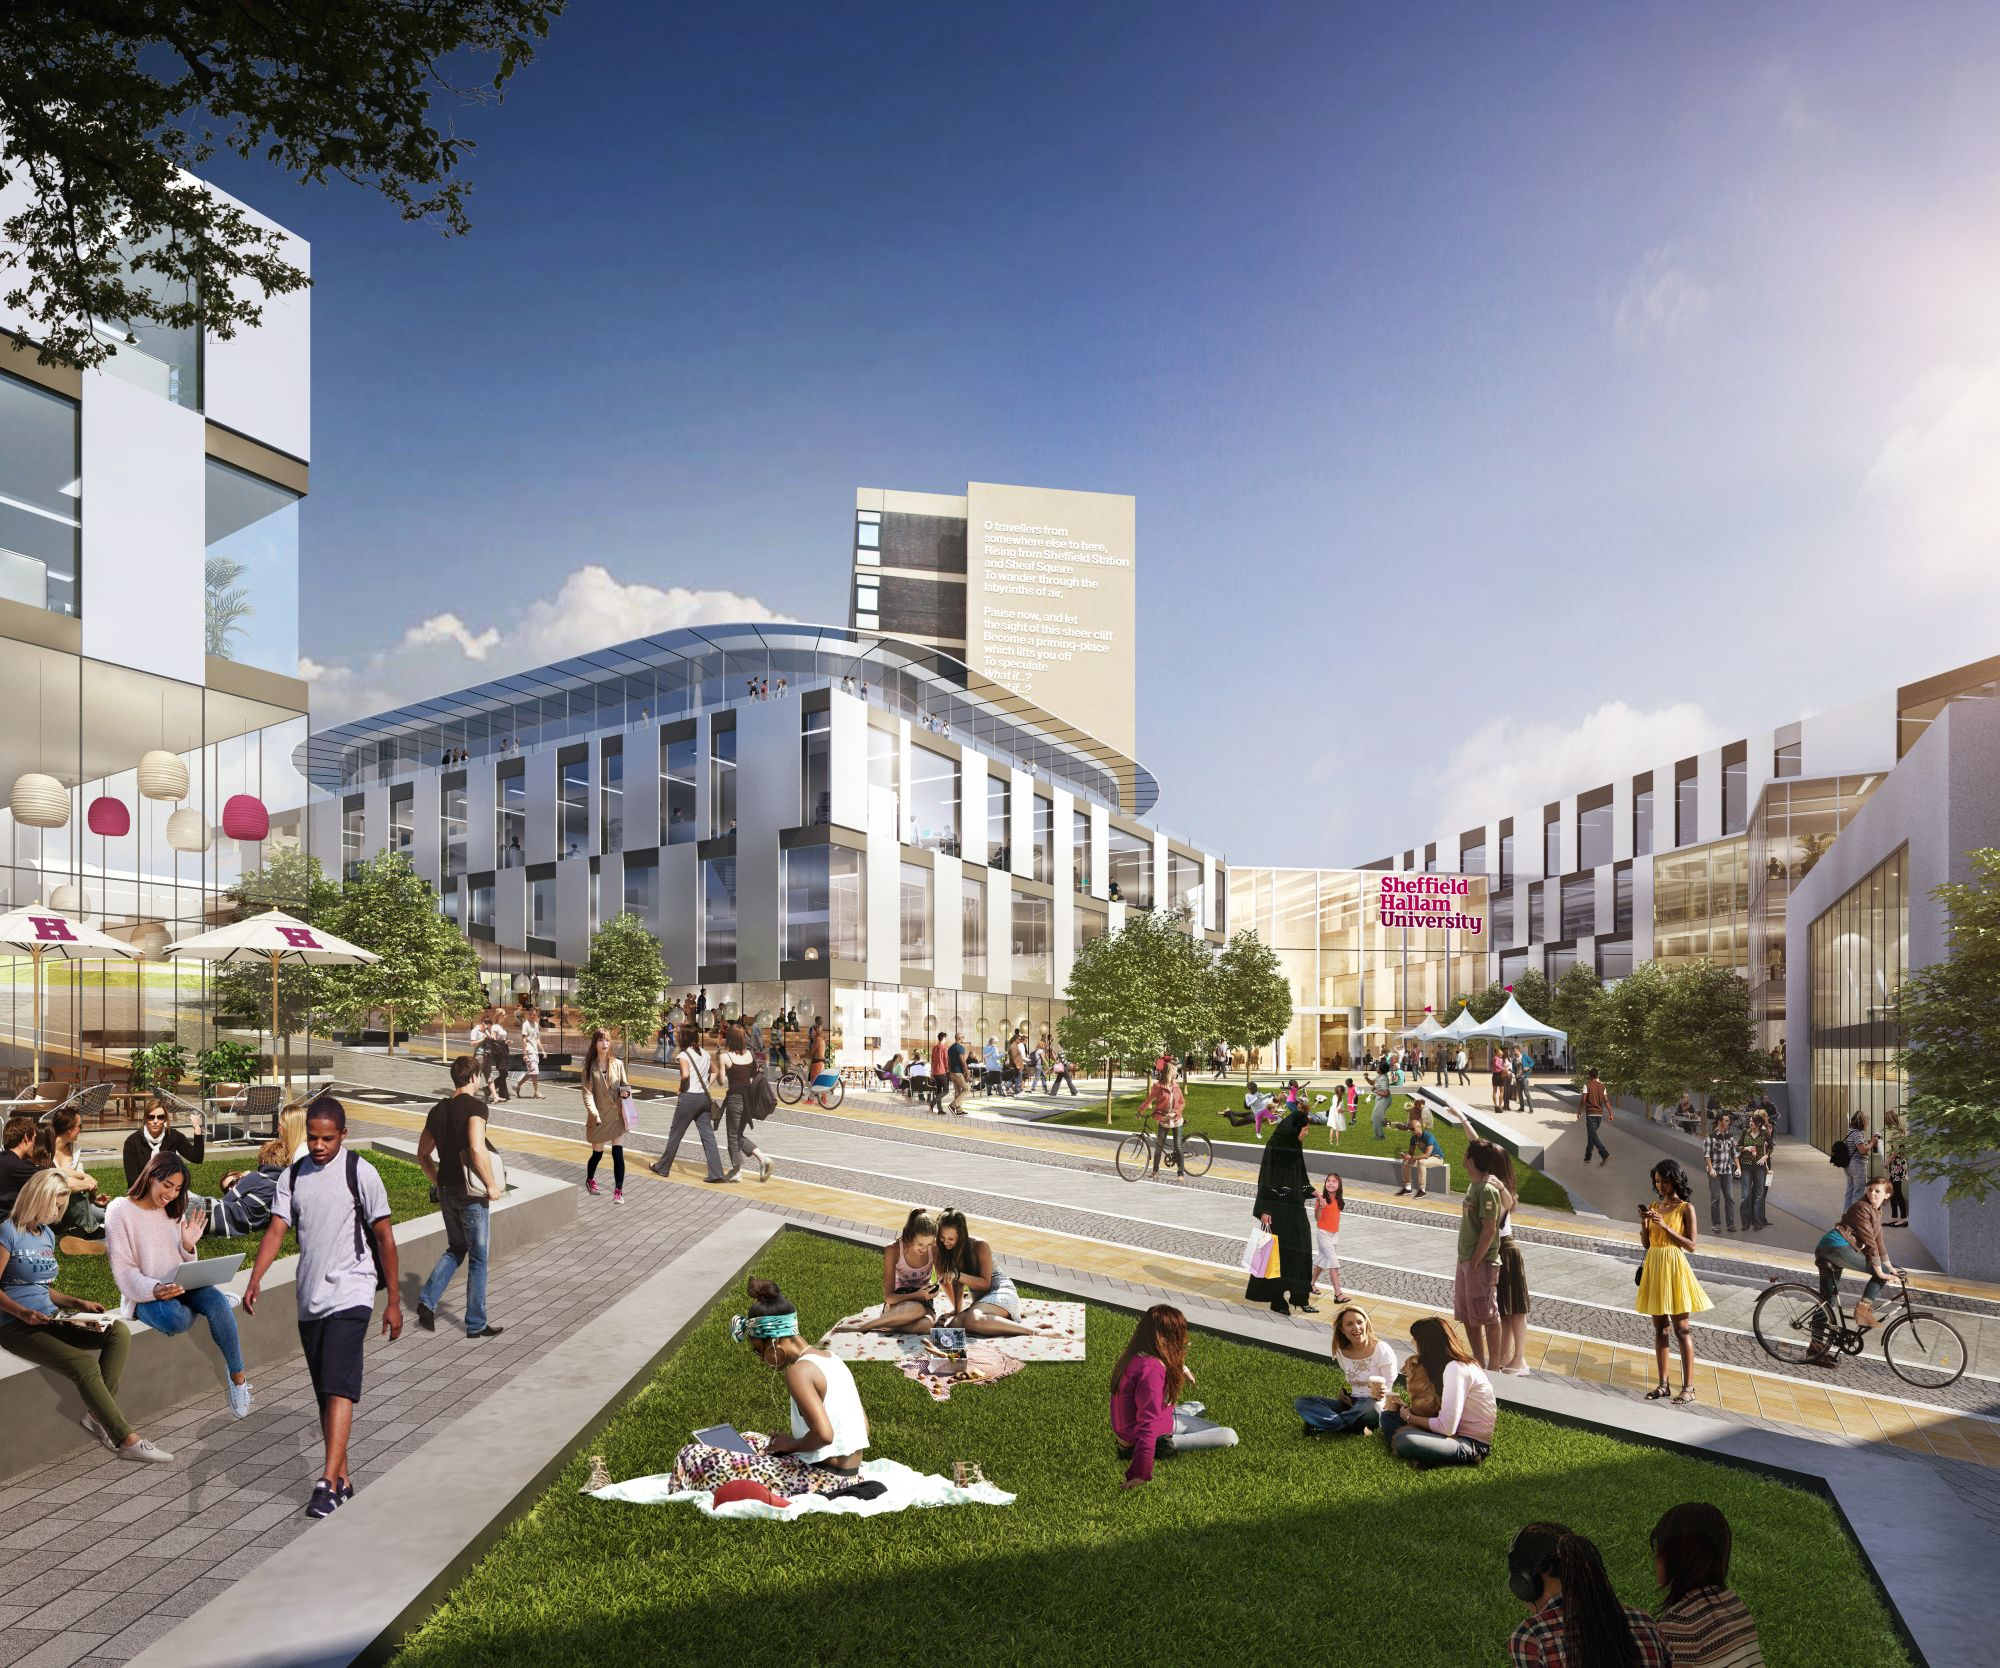 The £220 million Sheffield Hallam University Development is the first phase of a 20-year plan to transform its campus